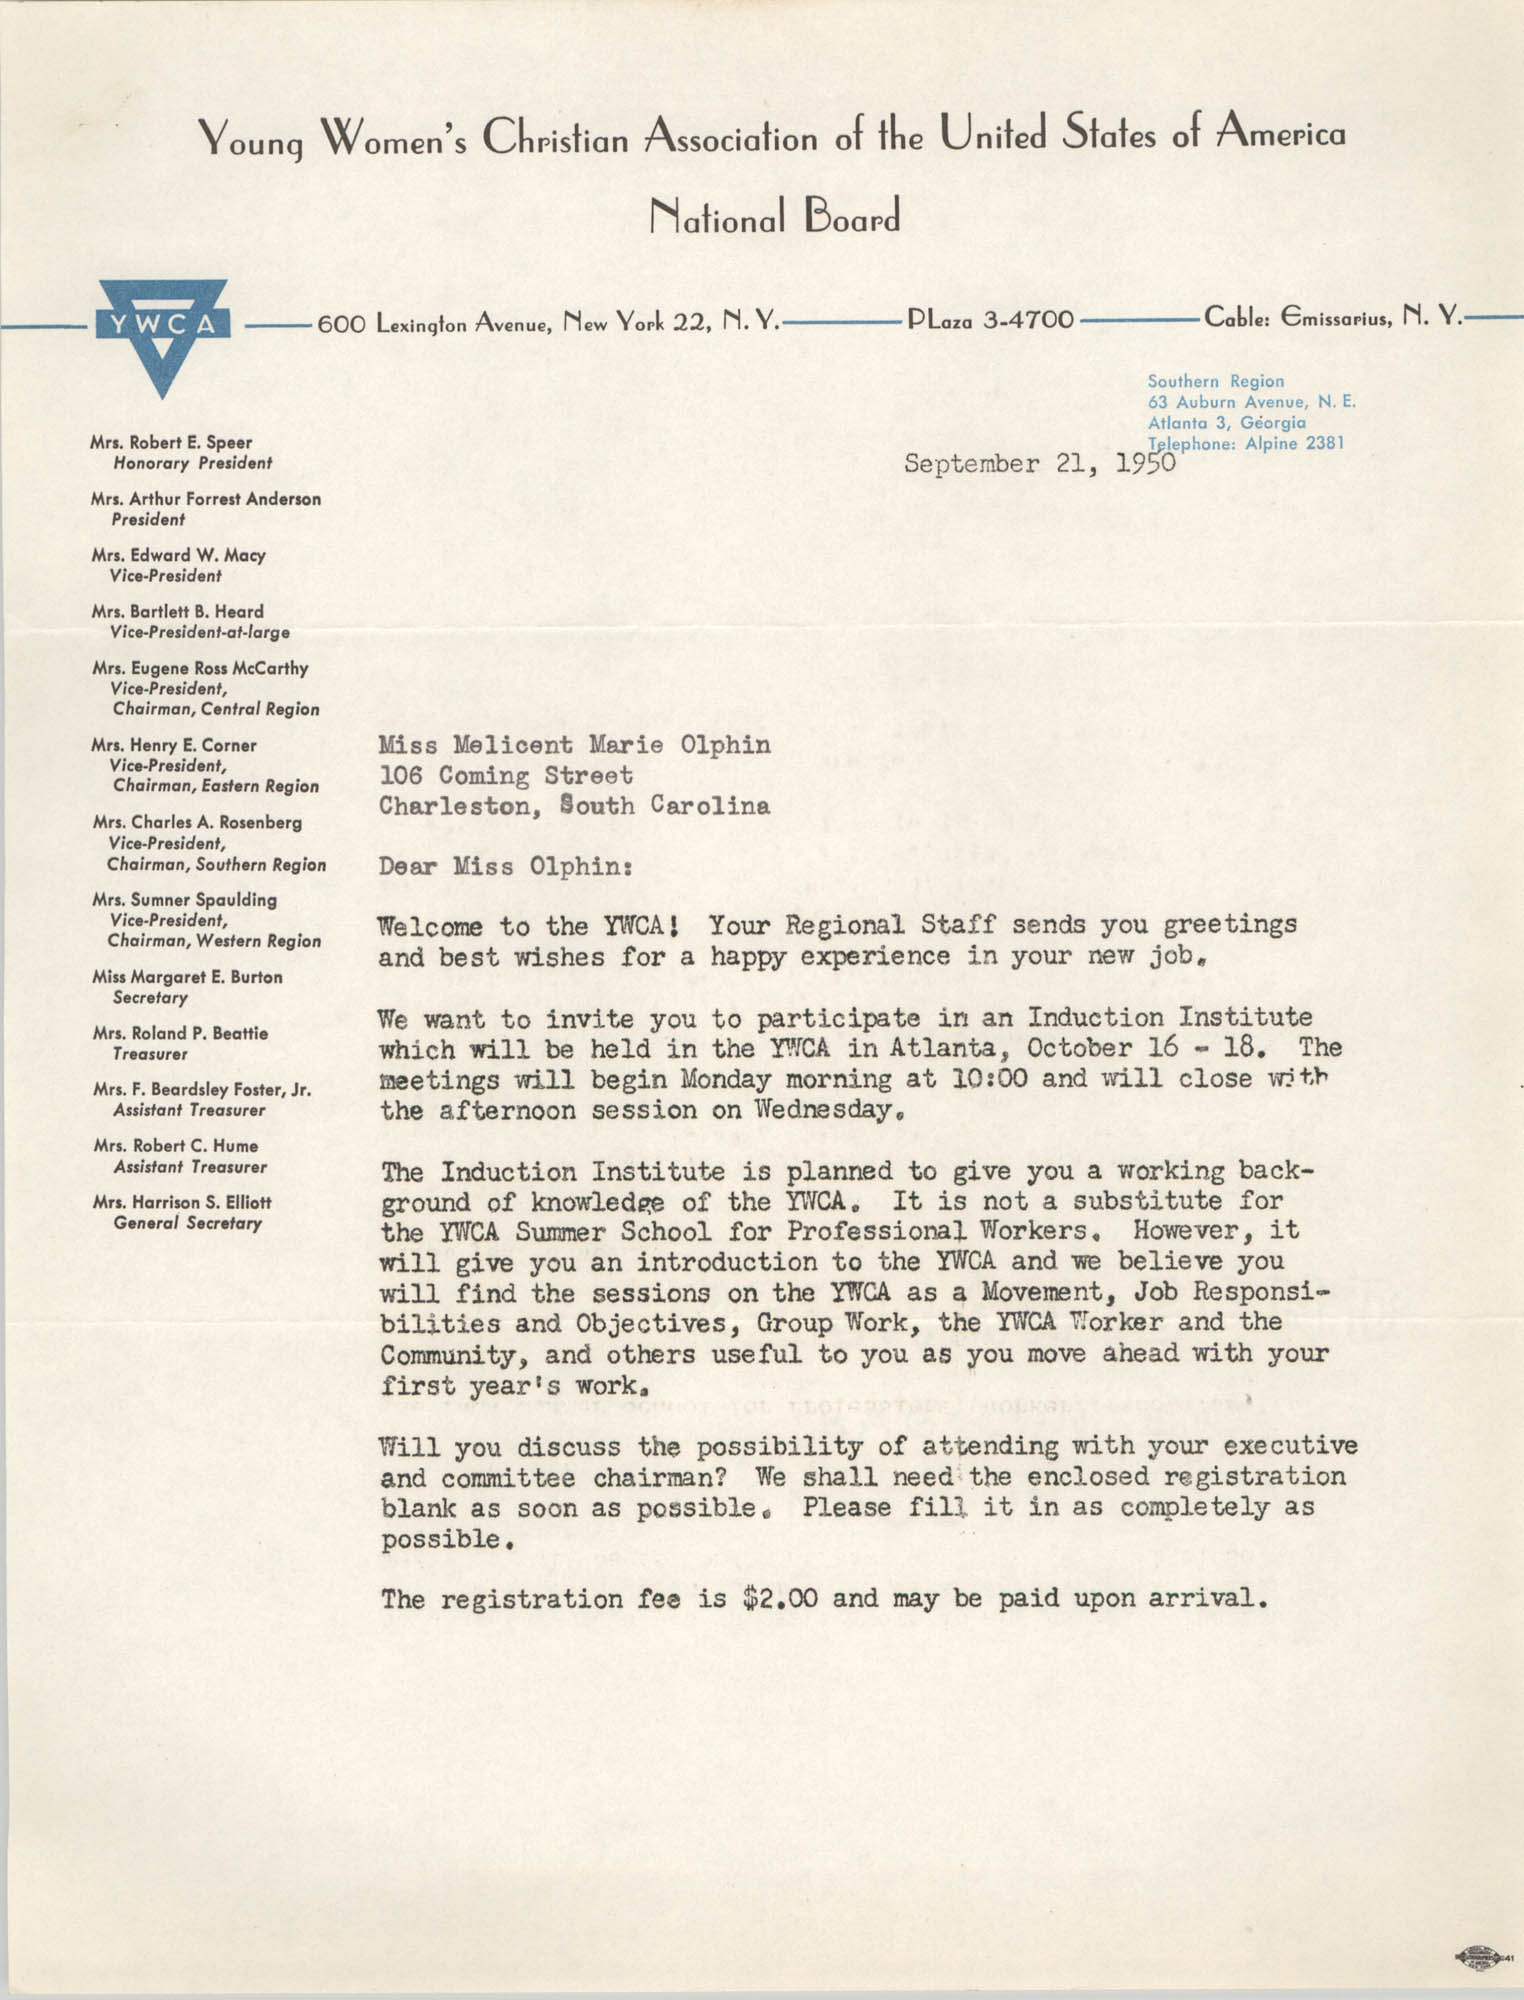 Letter from Mary Jane Willett to Melicent Marie Olphin, September 21, 1950